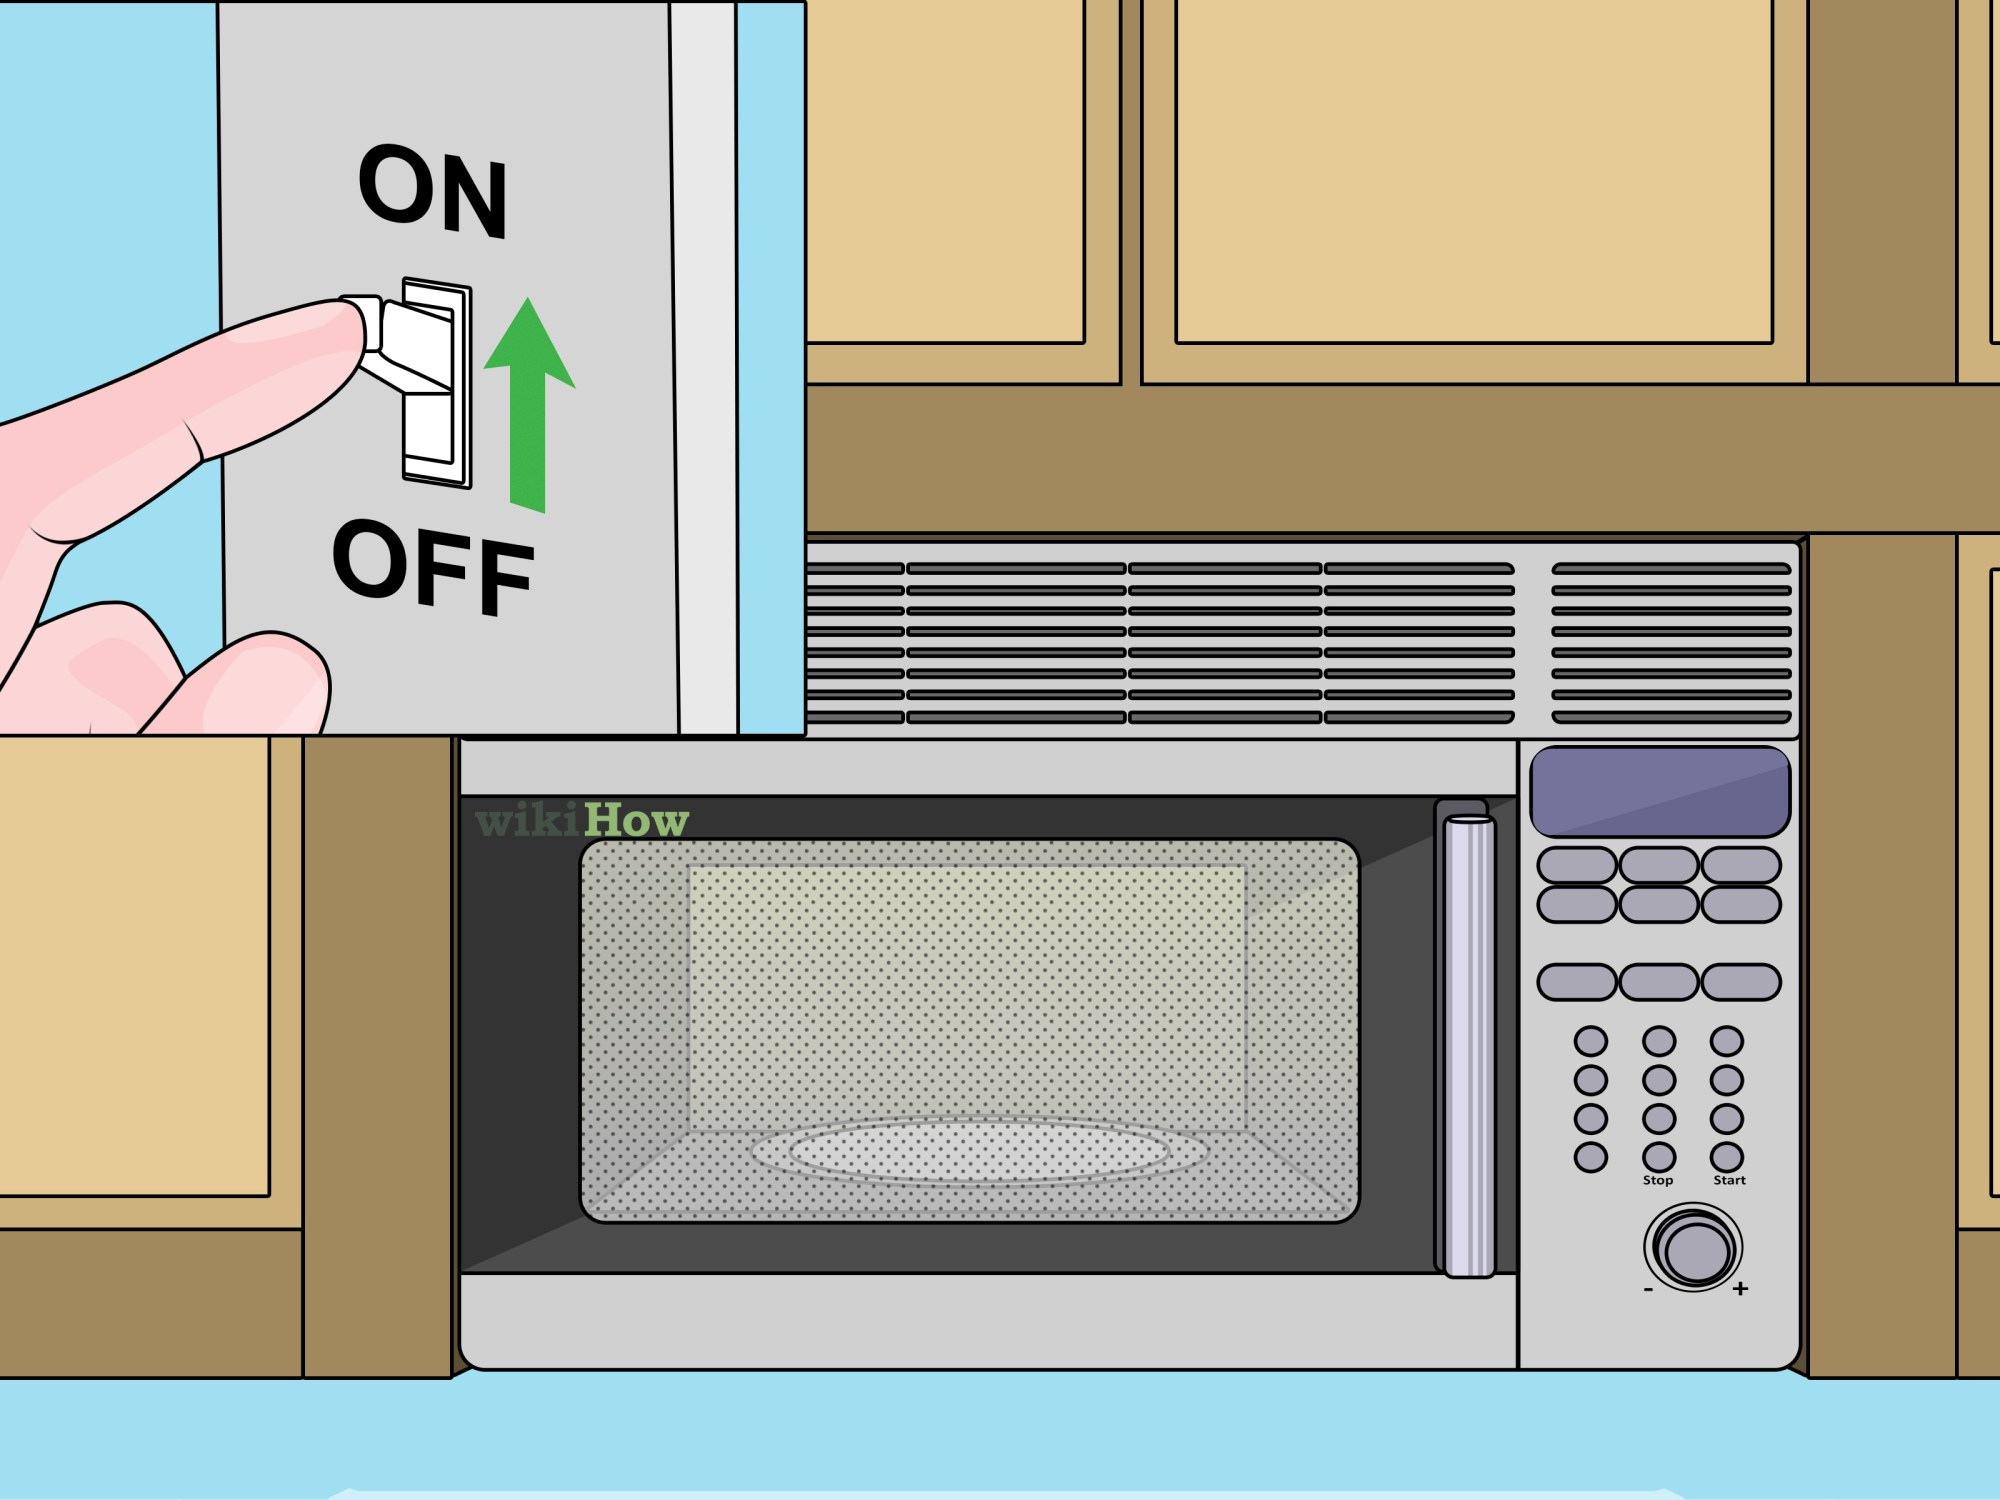 hight resolution of how to install an over the range microwave